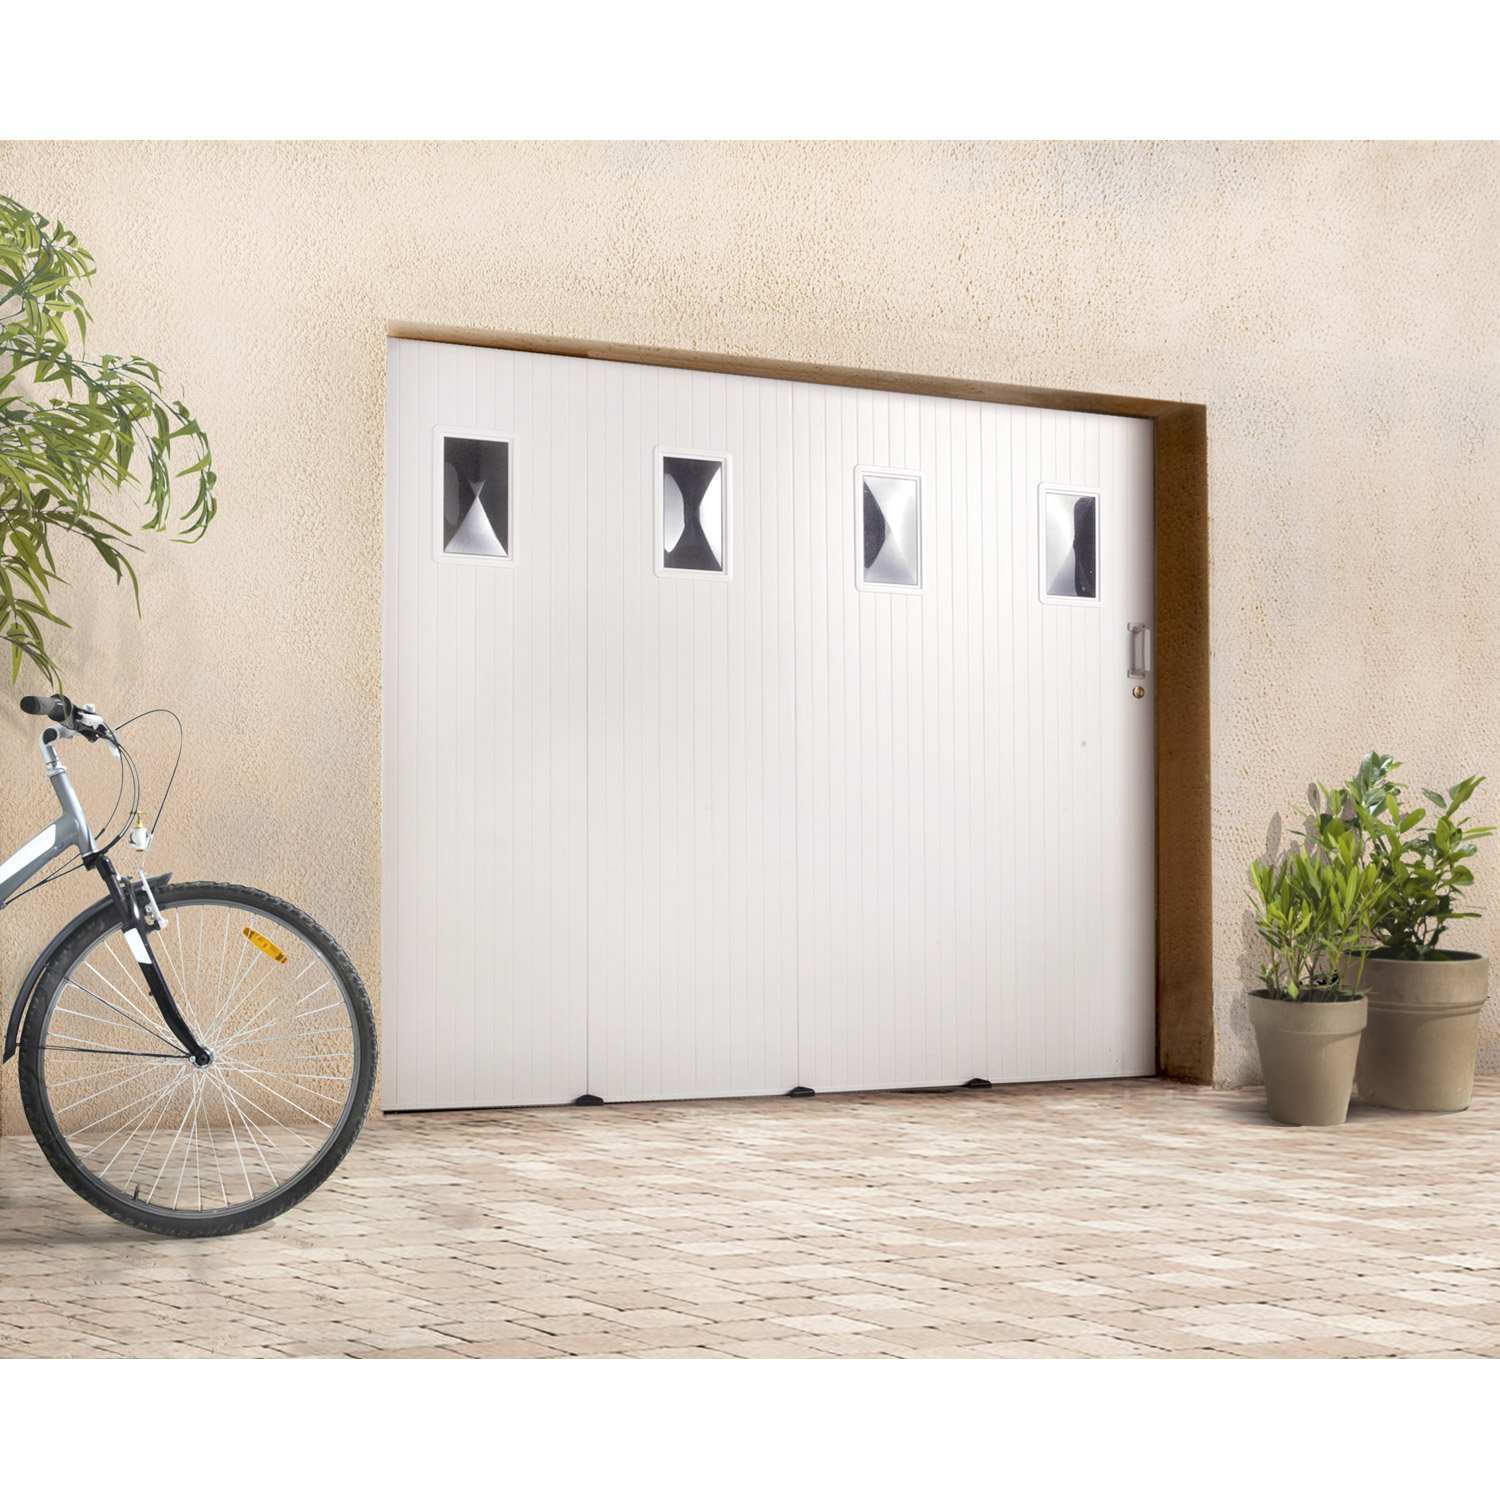 Porte coulissante bois leroy merlin with porte coulissante bois leroy merlin - Porte atelier coulissante leroy merlin ...